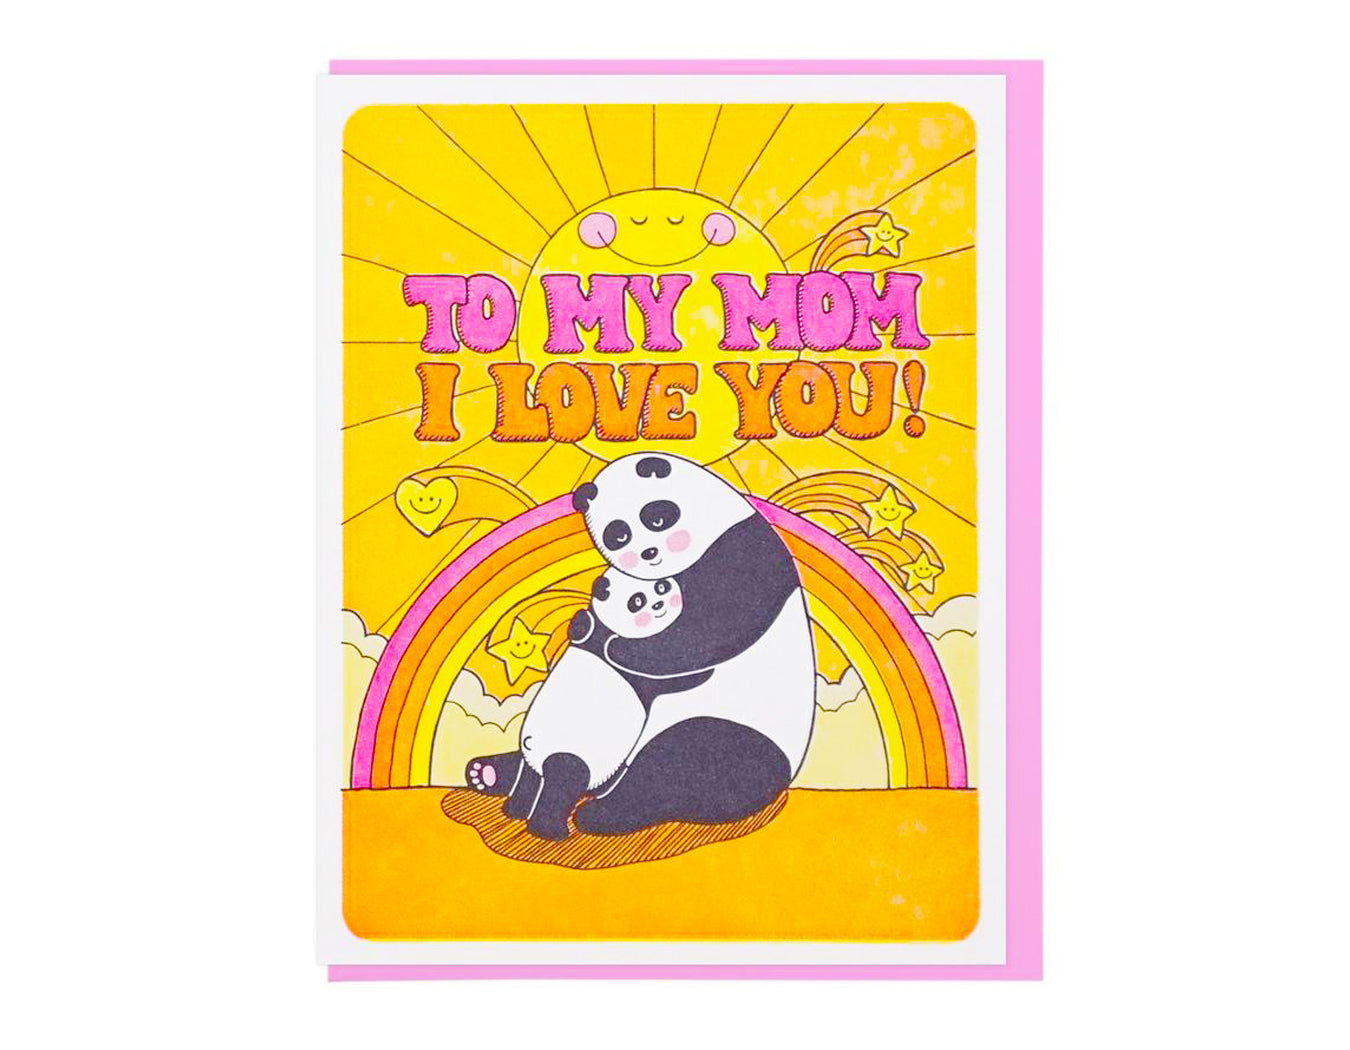 SUNSHINE AND RAINBOWS WITH TWO PANDAS HUGGING TEXT READS TO MY MOM I LOVE YOU!